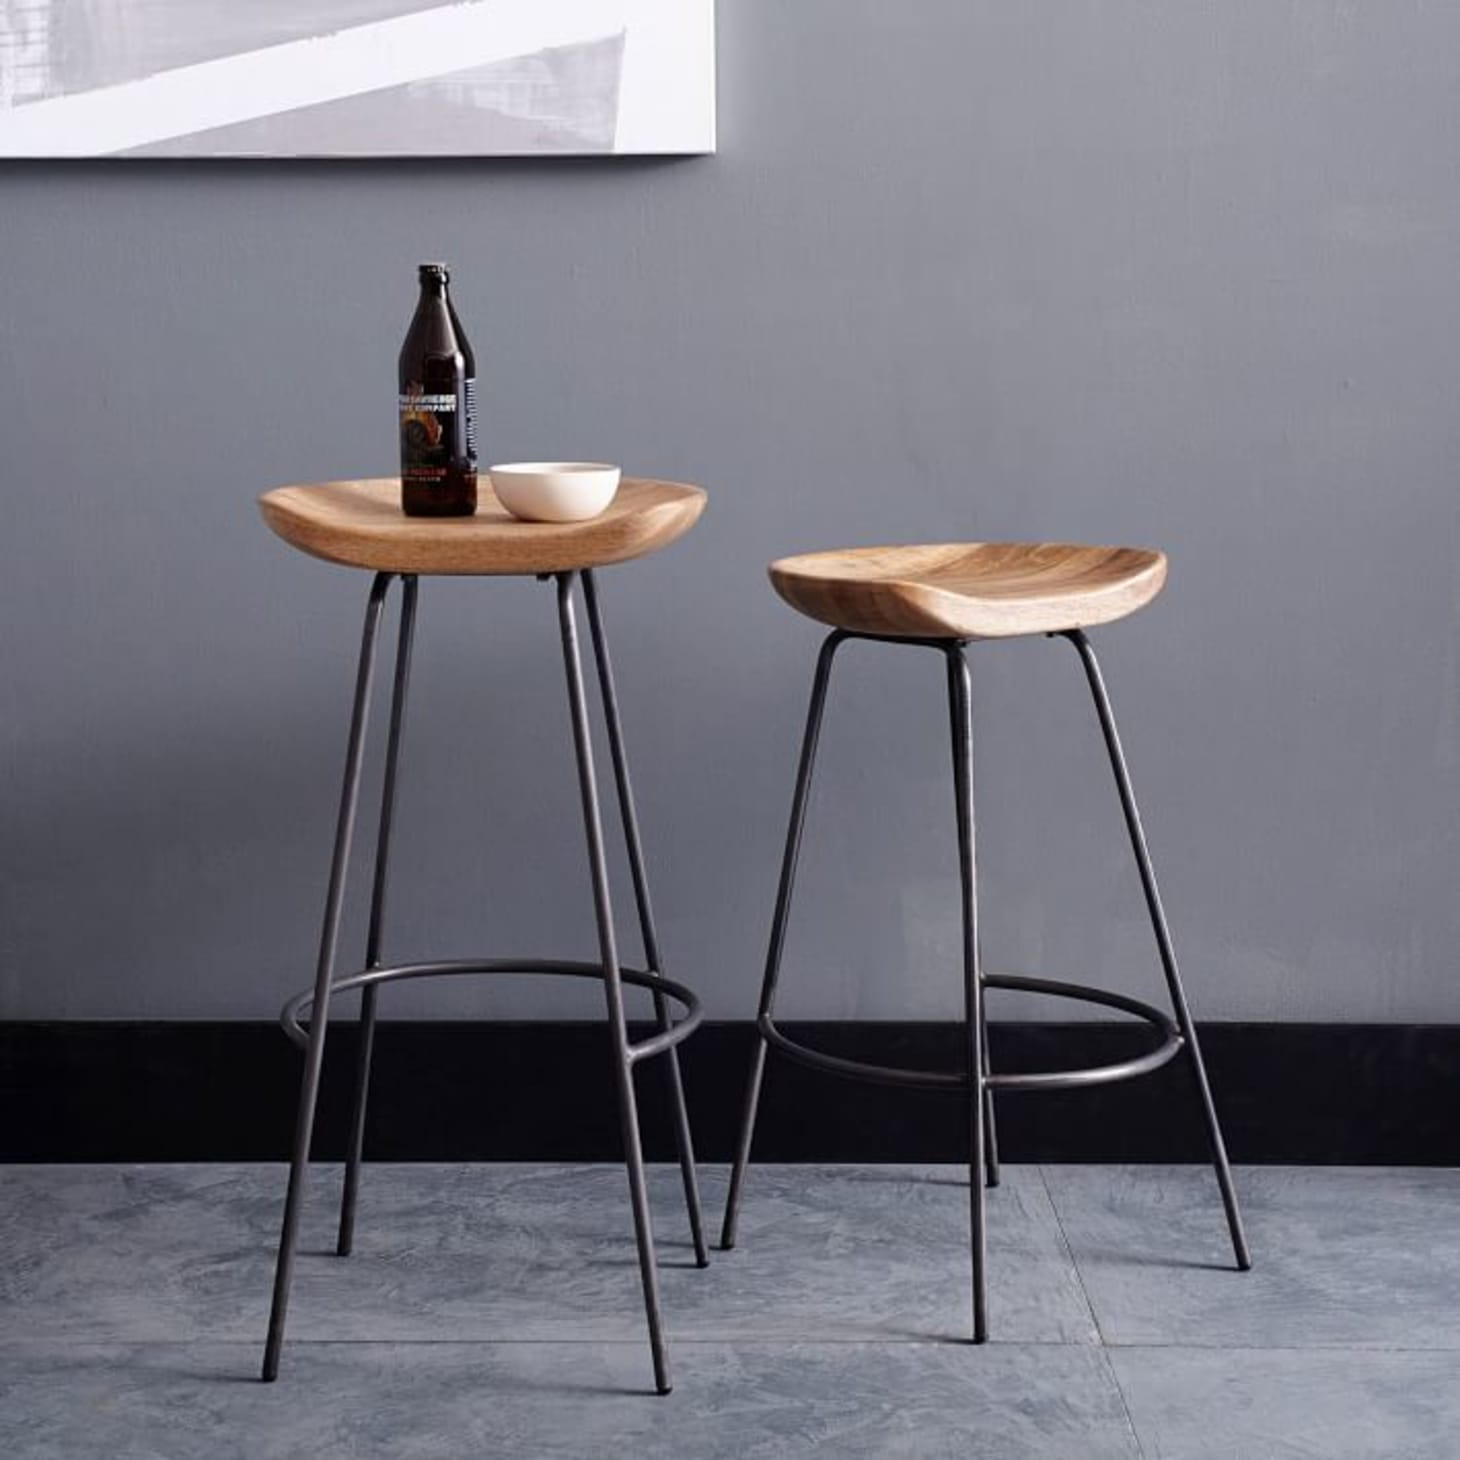 Sensational Best Bar Stools Counter Stools 2012 Apartment Therapy Ibusinesslaw Wood Chair Design Ideas Ibusinesslaworg